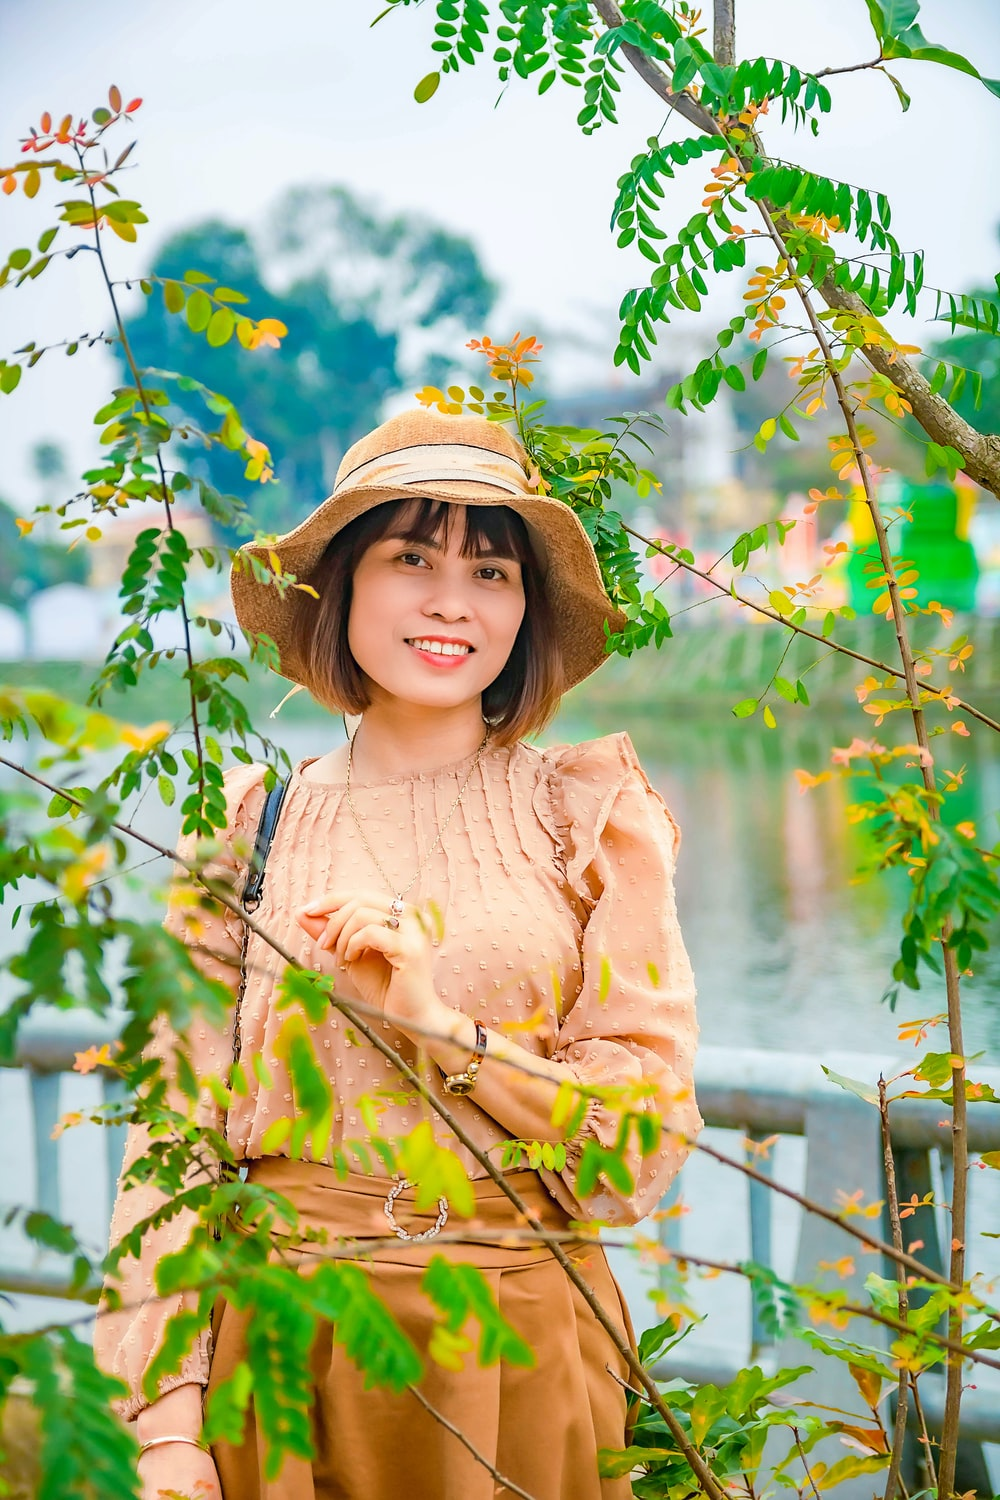 girl in brown long sleeve shirt and brown hat standing near green plants during daytime